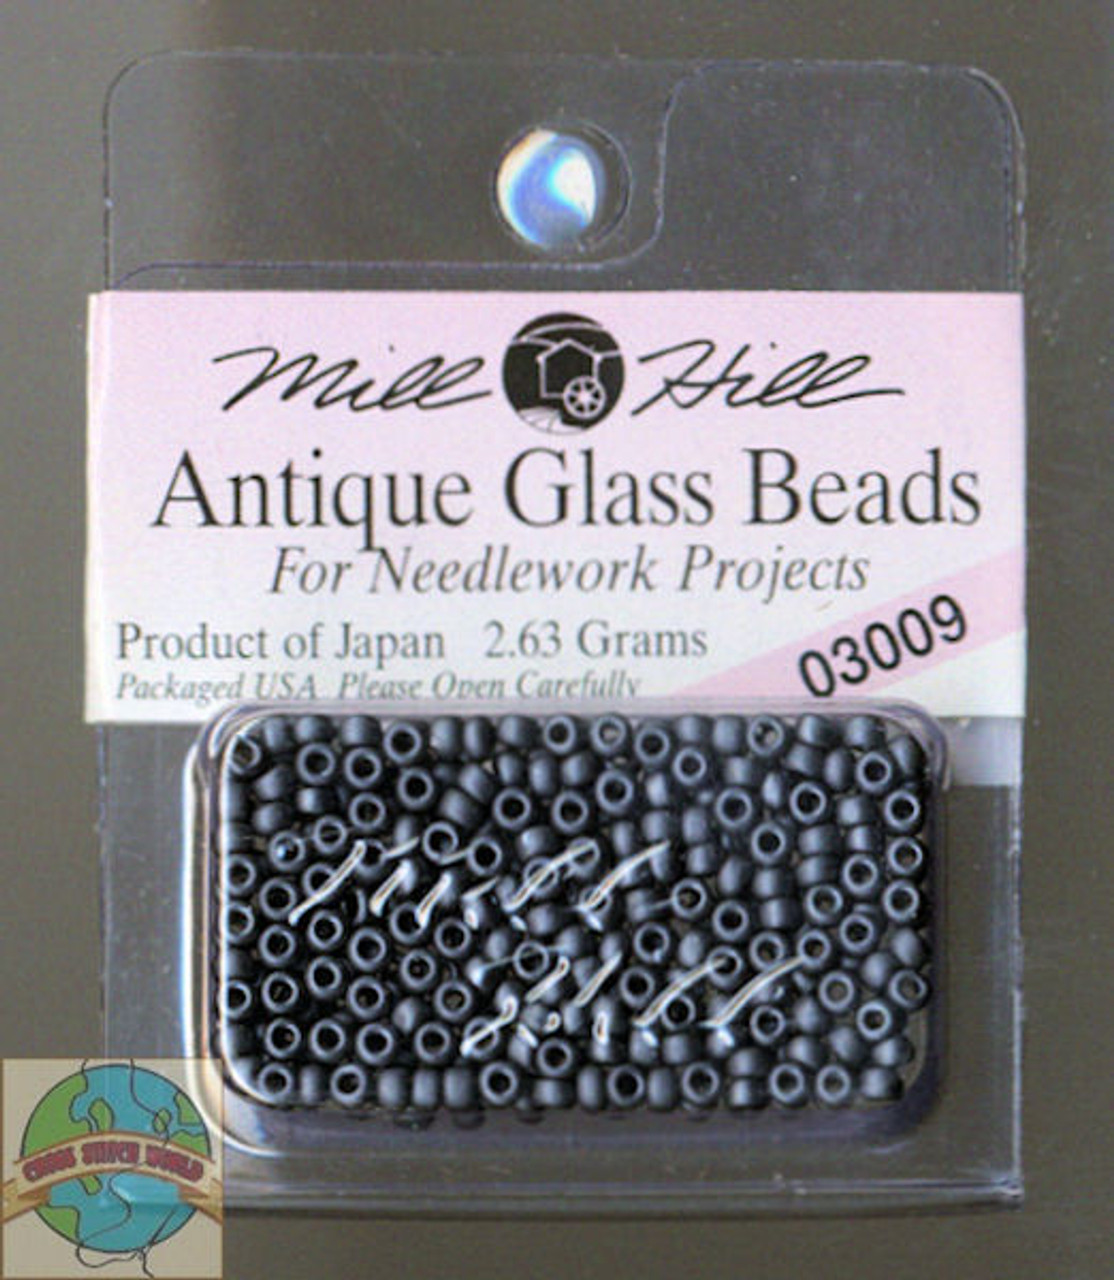 Mill Hill Antique Glass Beads 2.63g Charcoal #03009